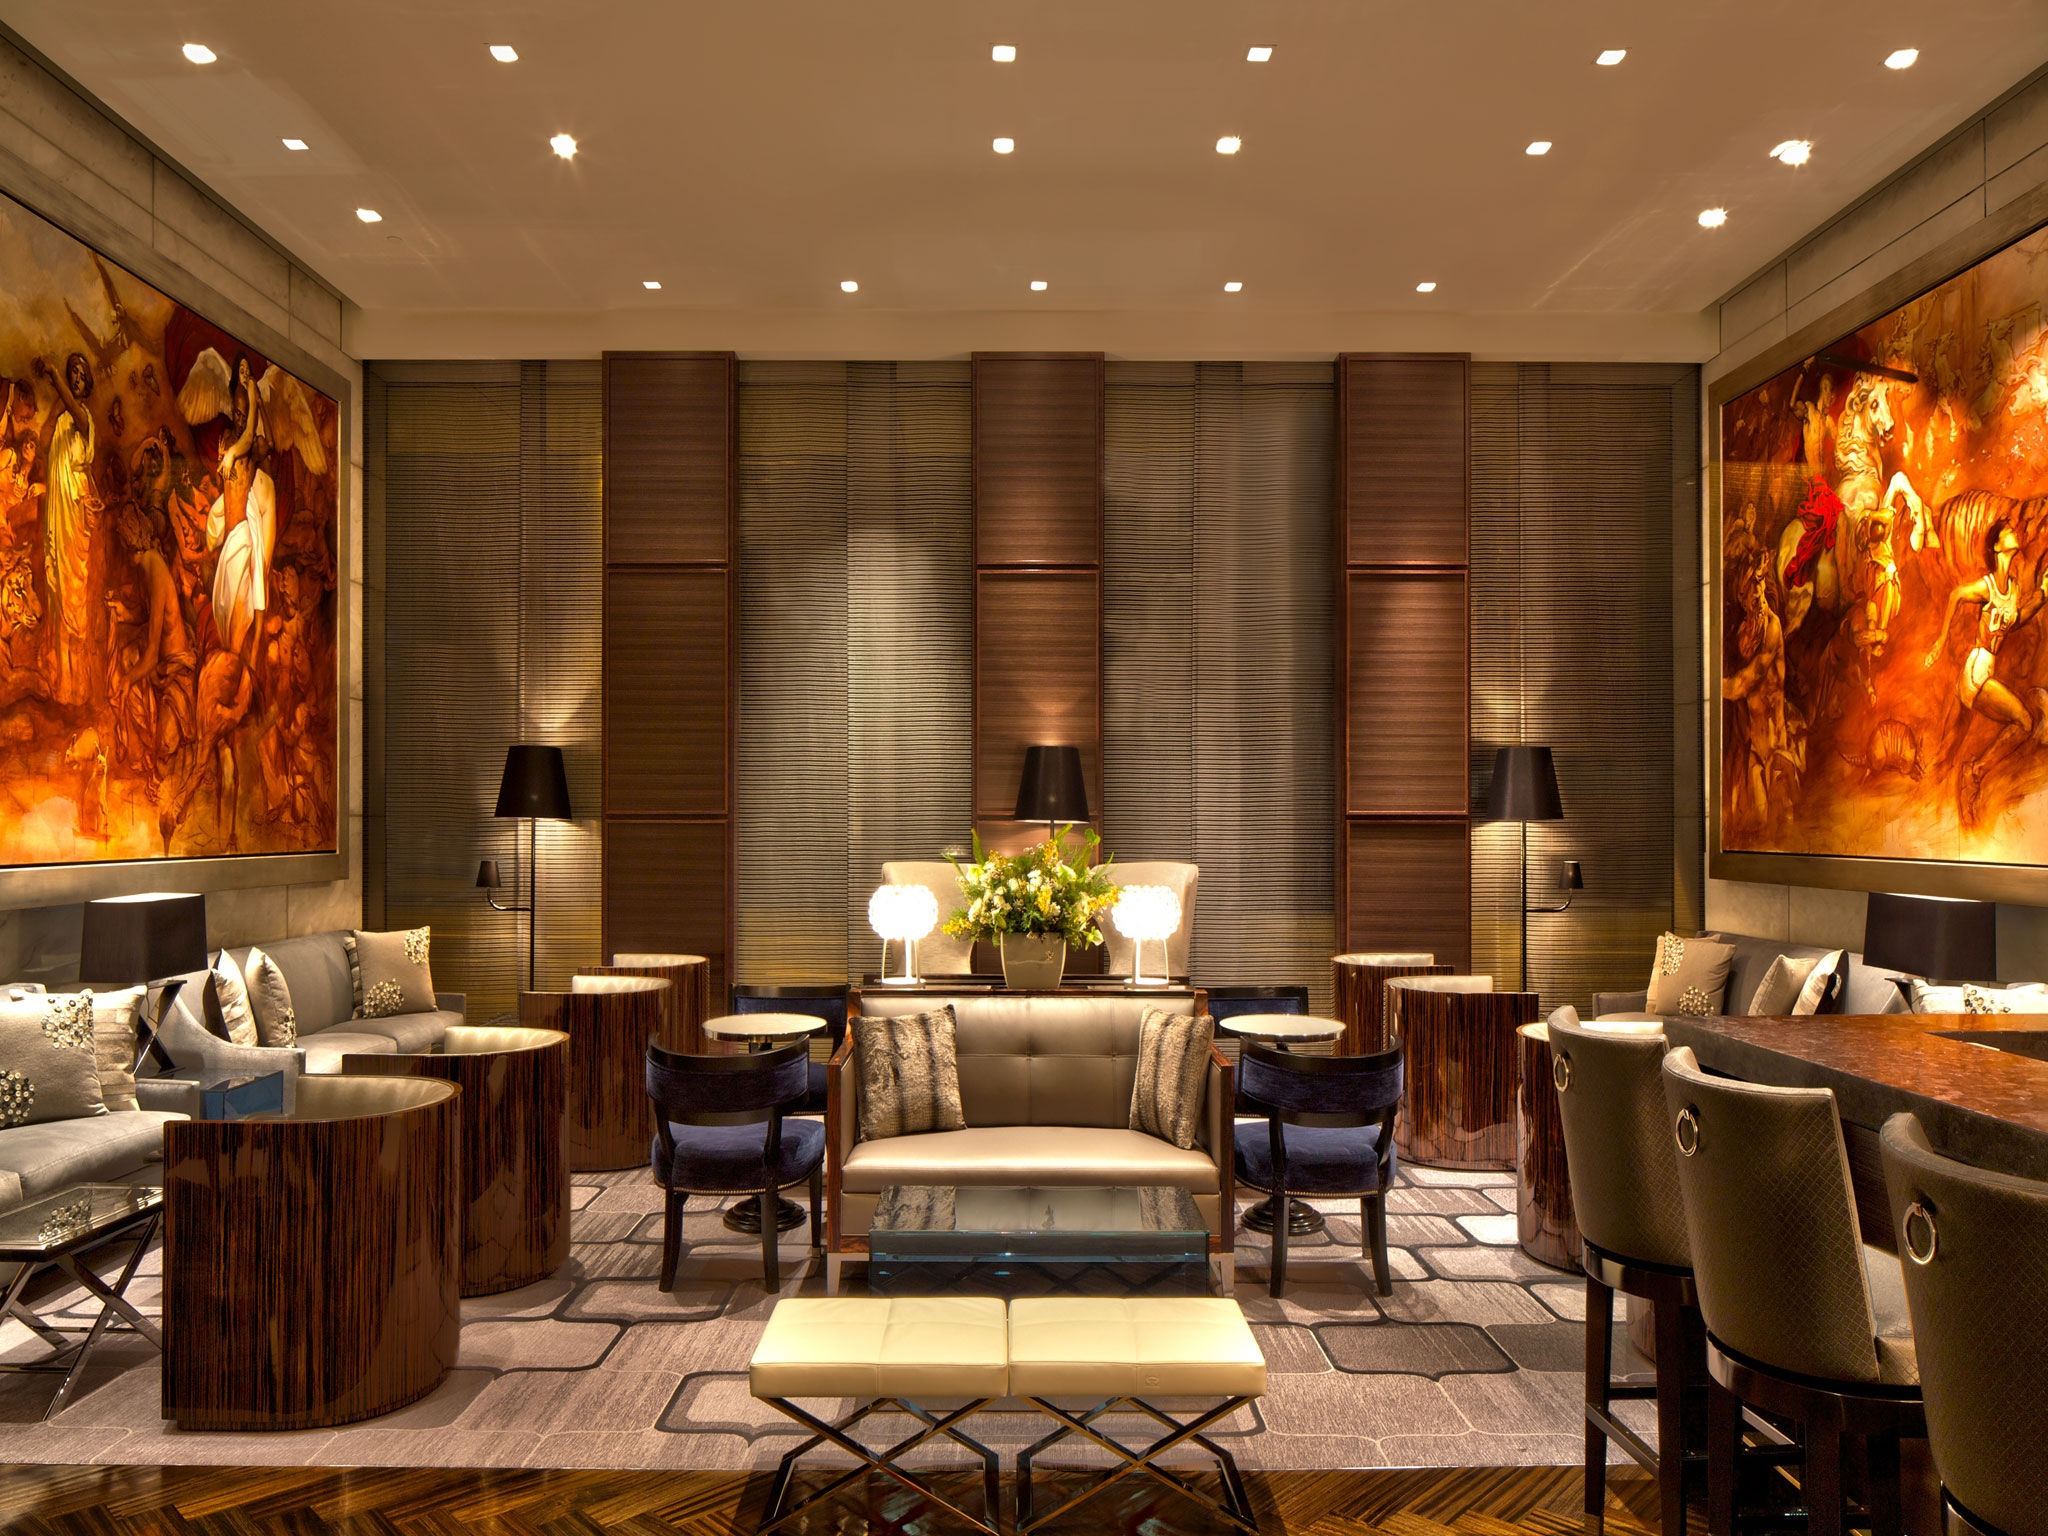 The St. Regis San Francisco - Lobby Bar Lounge